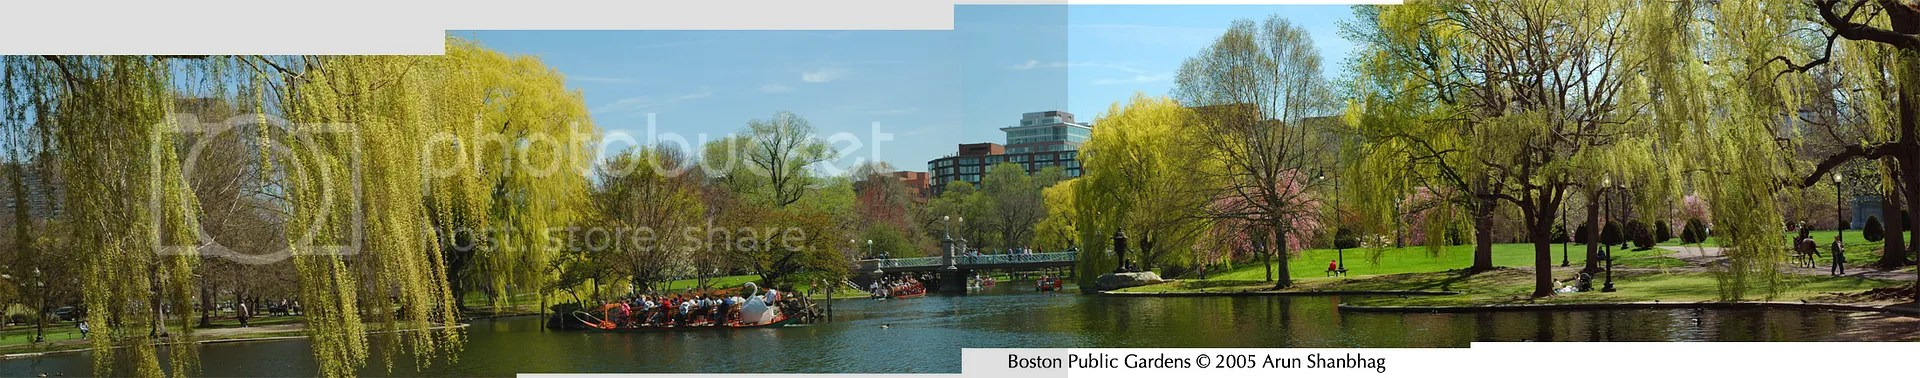 Boston Public Garden in the Spring pics by Arun Shanbhag